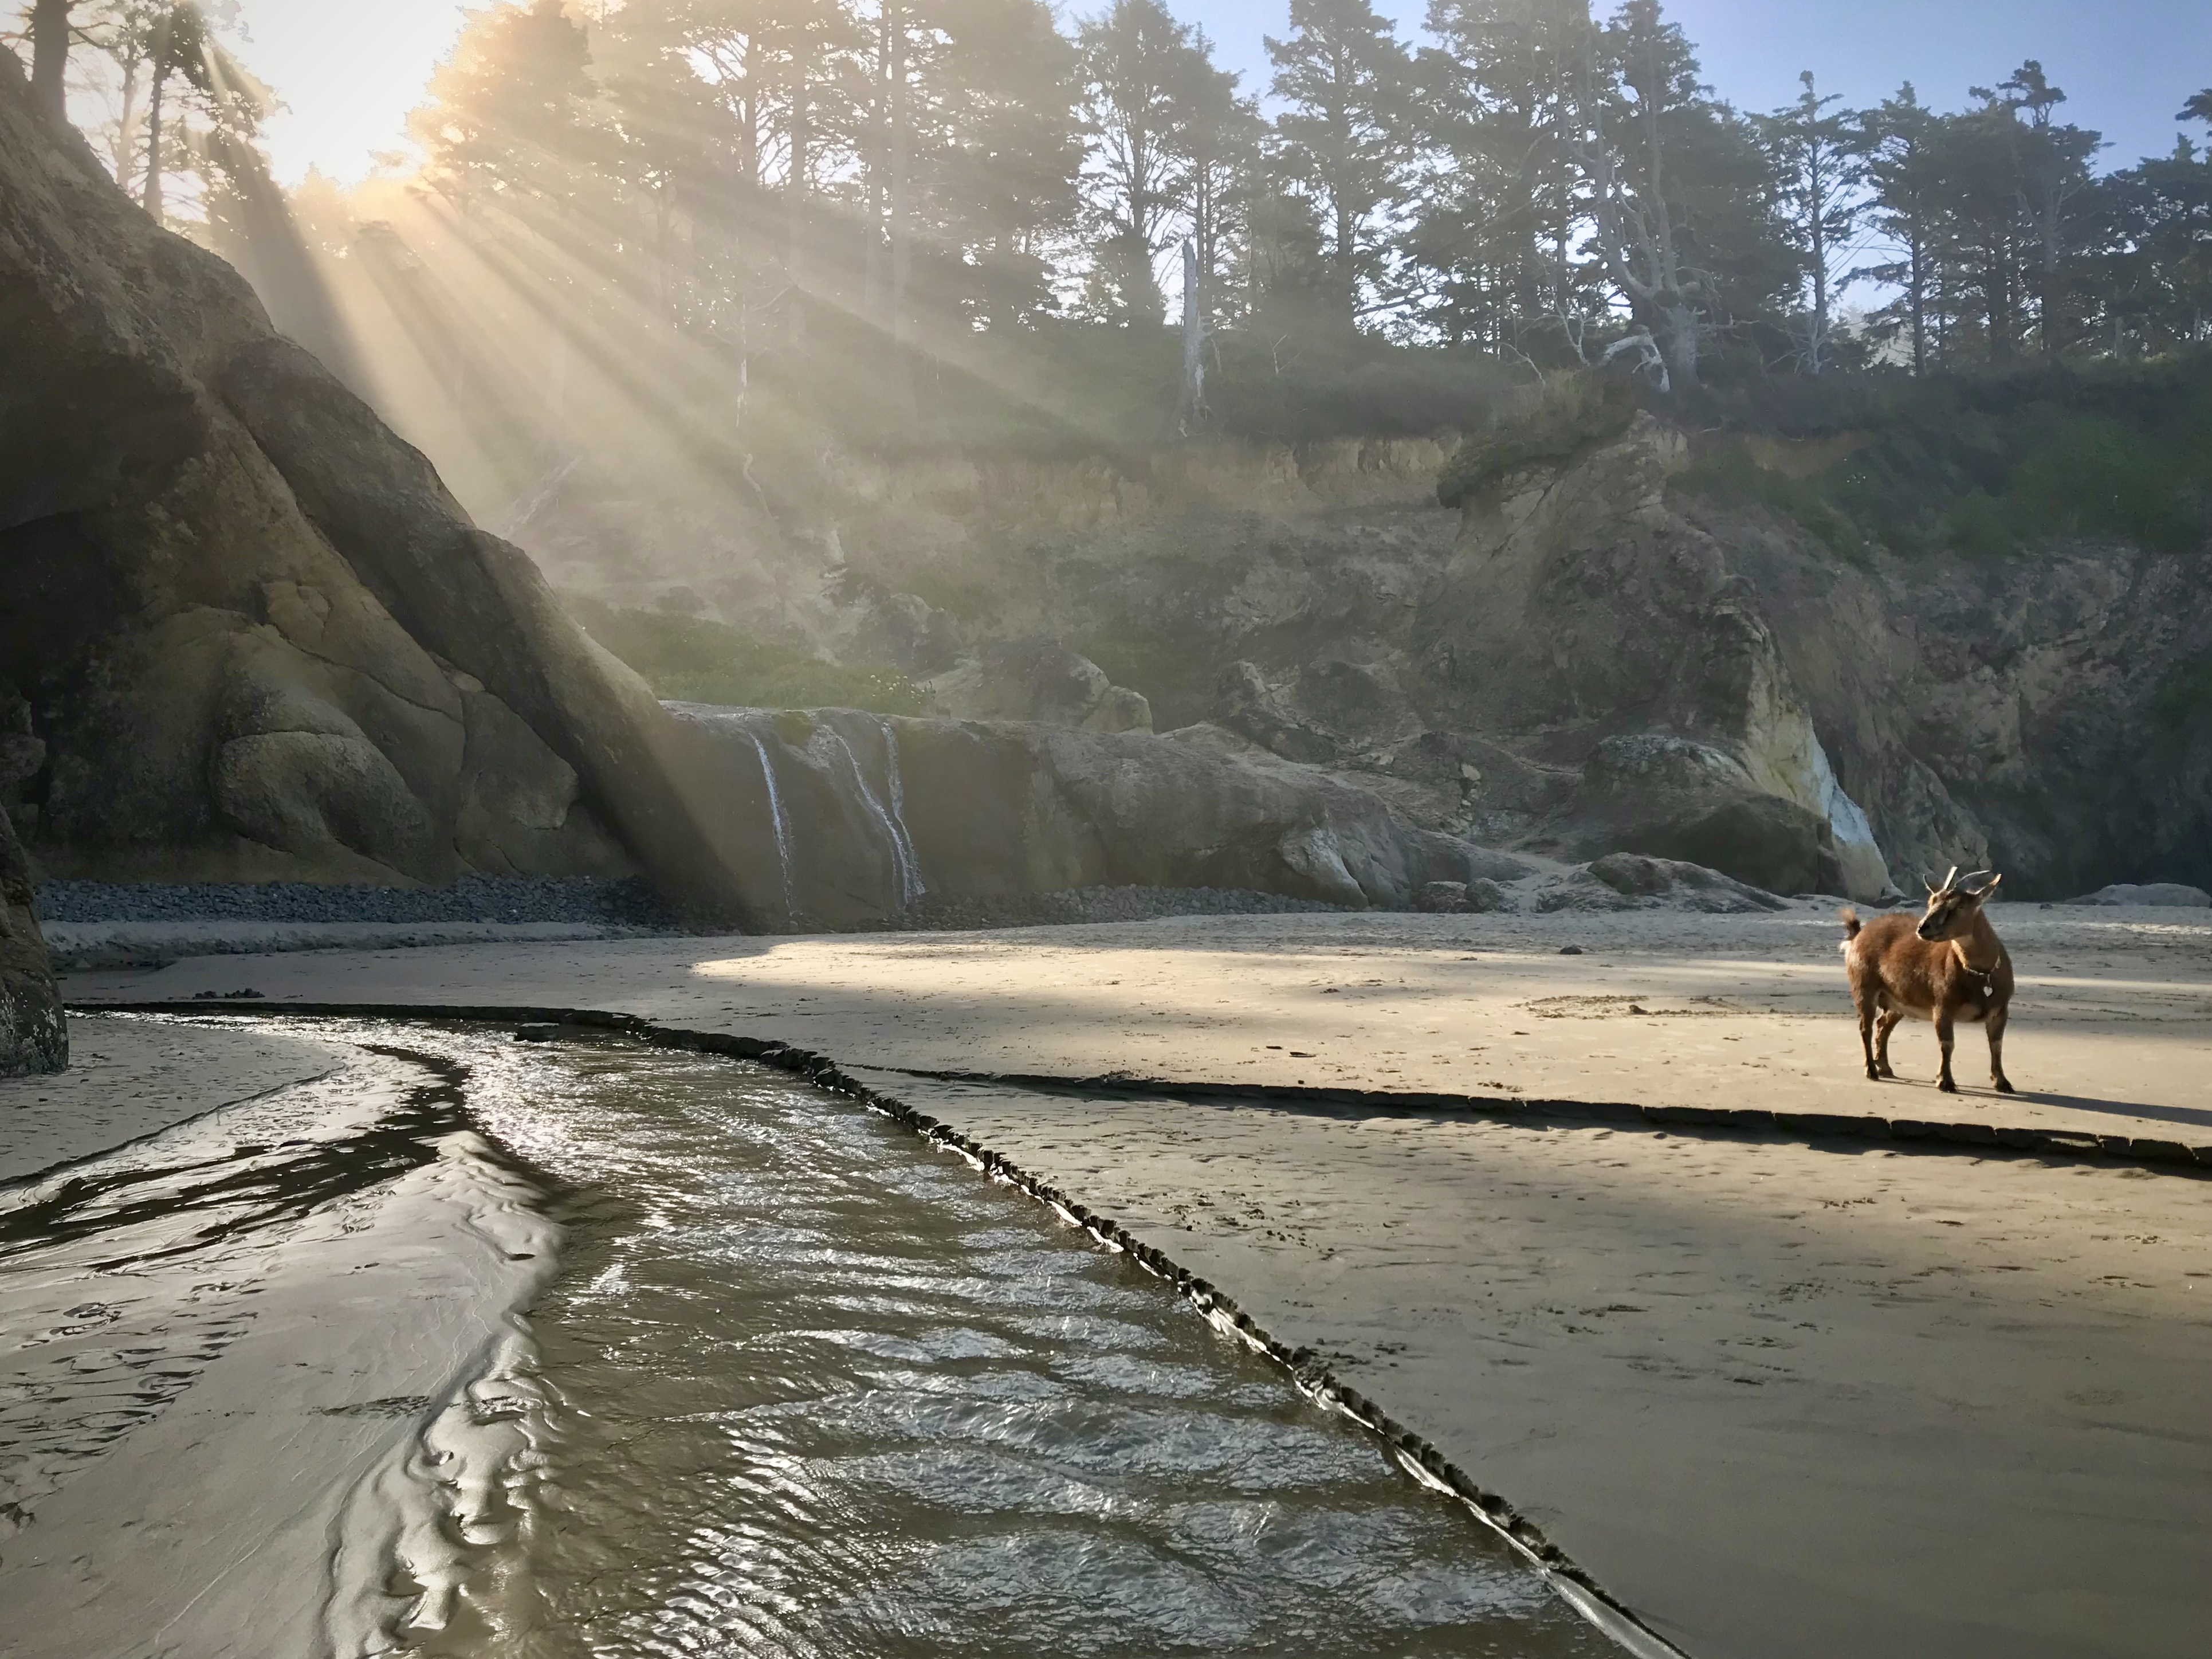 A lone goat stands on a beach as sun rays splash on the sand.